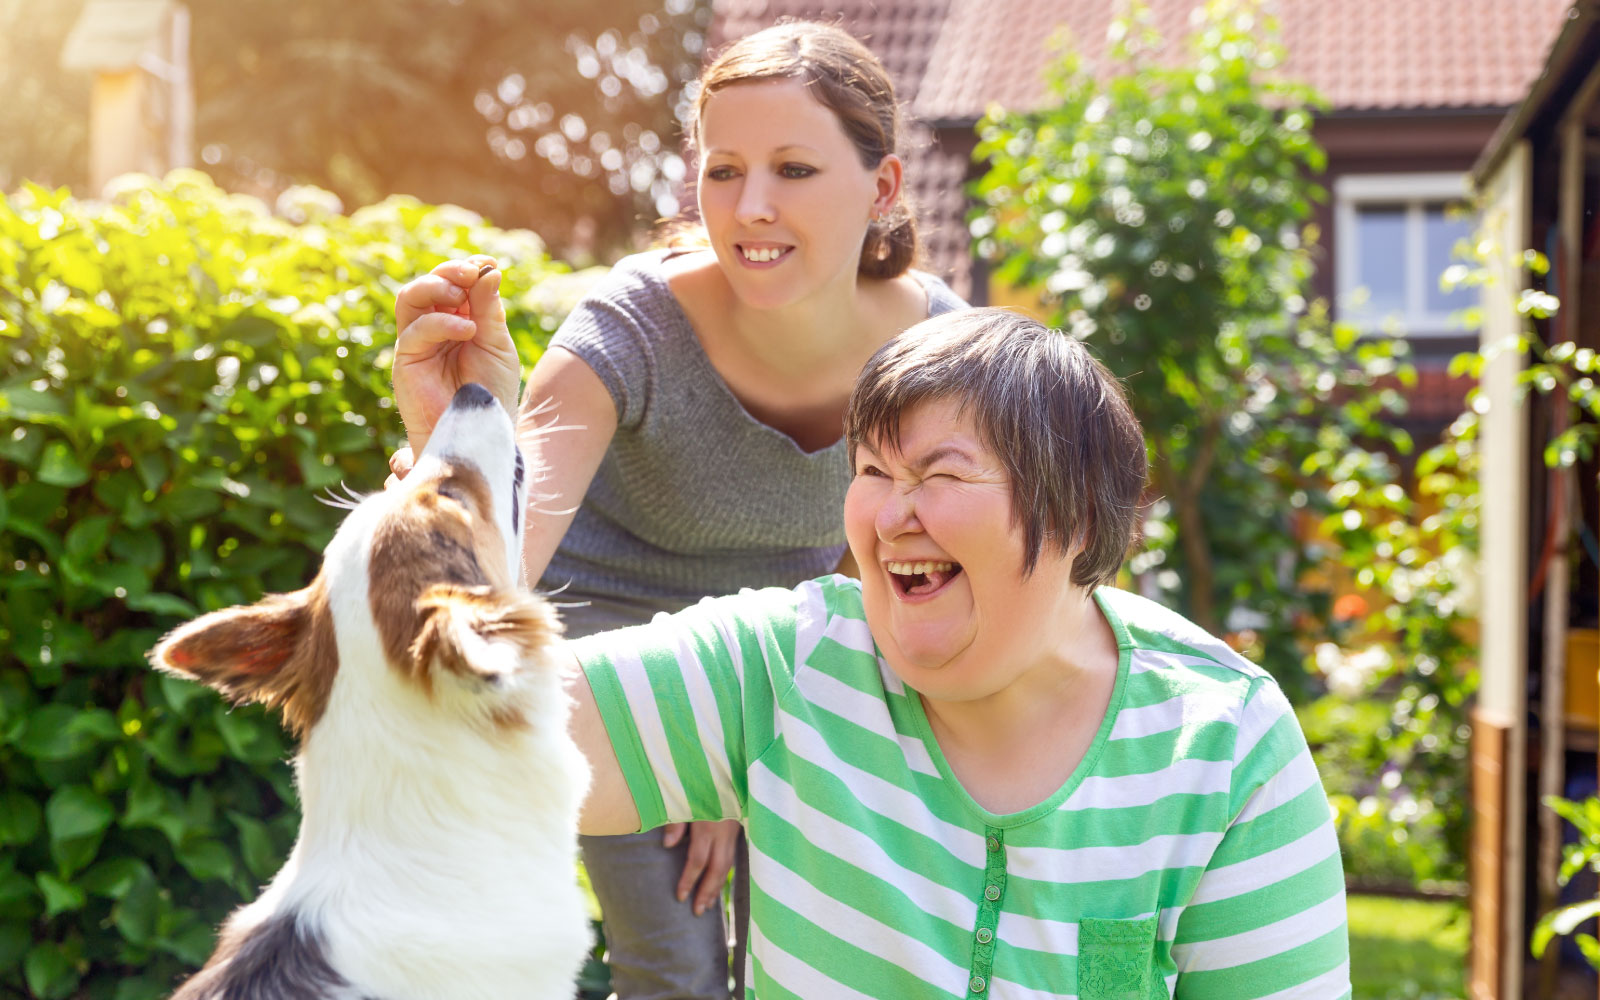 Just ONE Health and Social Care | Providing Care, Support & Accomodation | Dog and adults